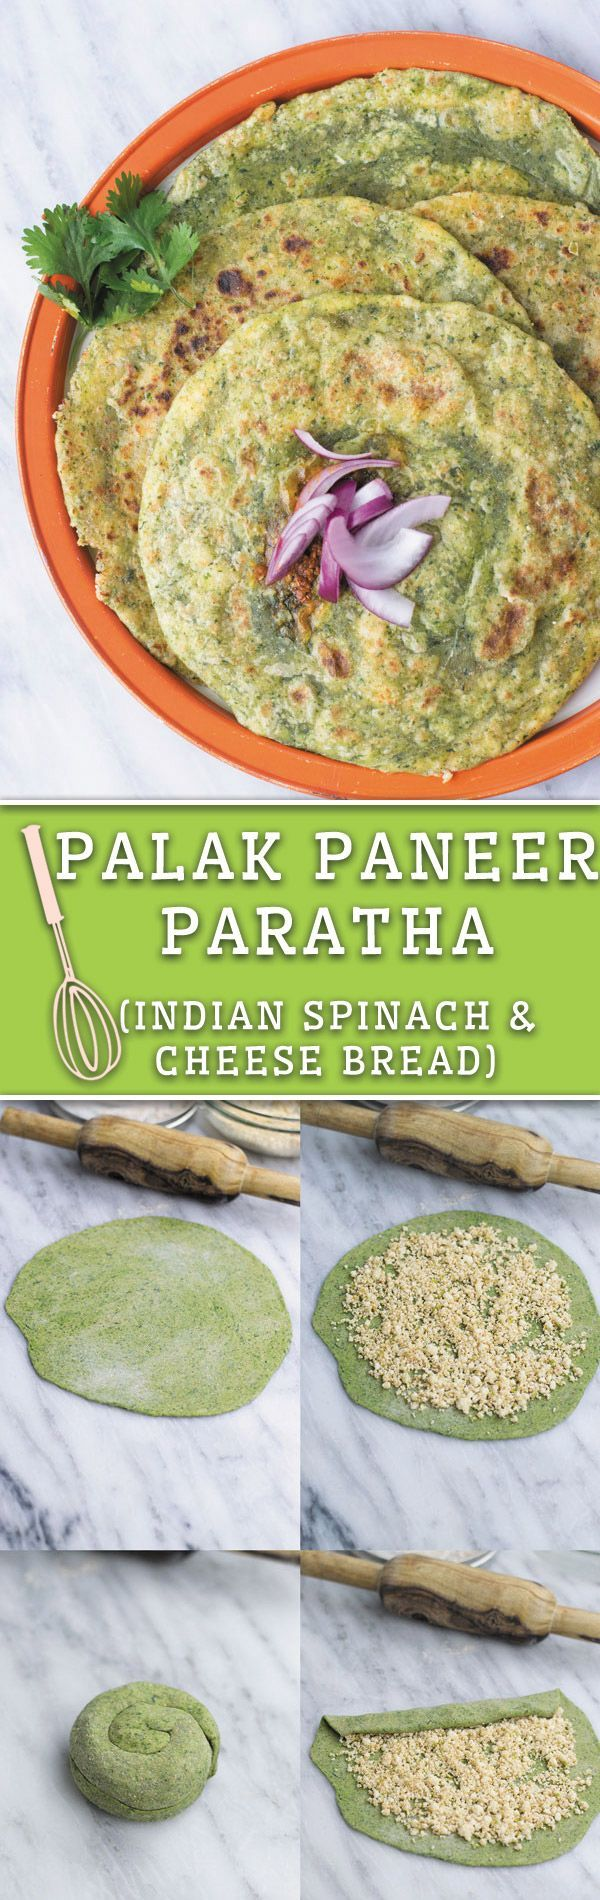 Palak Paneer Paratha- Indian flatbread dough made with spinach and stuffed with seasoned Indian cheese, perfect healthy breakfast or side dish!